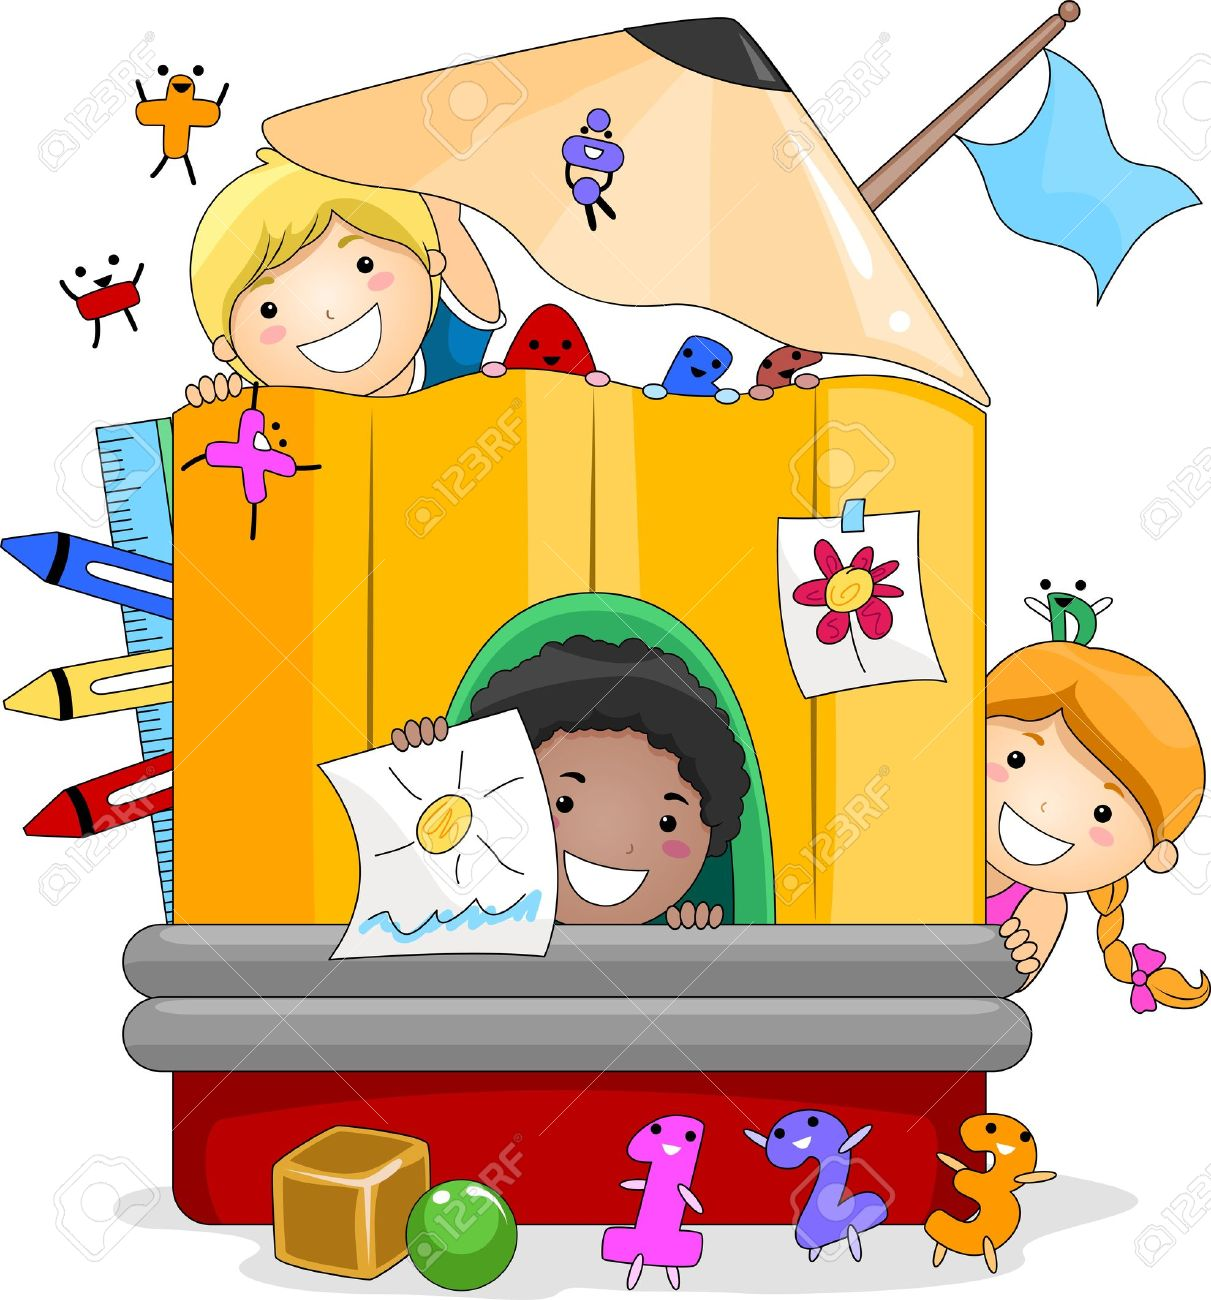 Illustration of Kids Playing Inside a Giant Pencil Stock Photo - 10192176